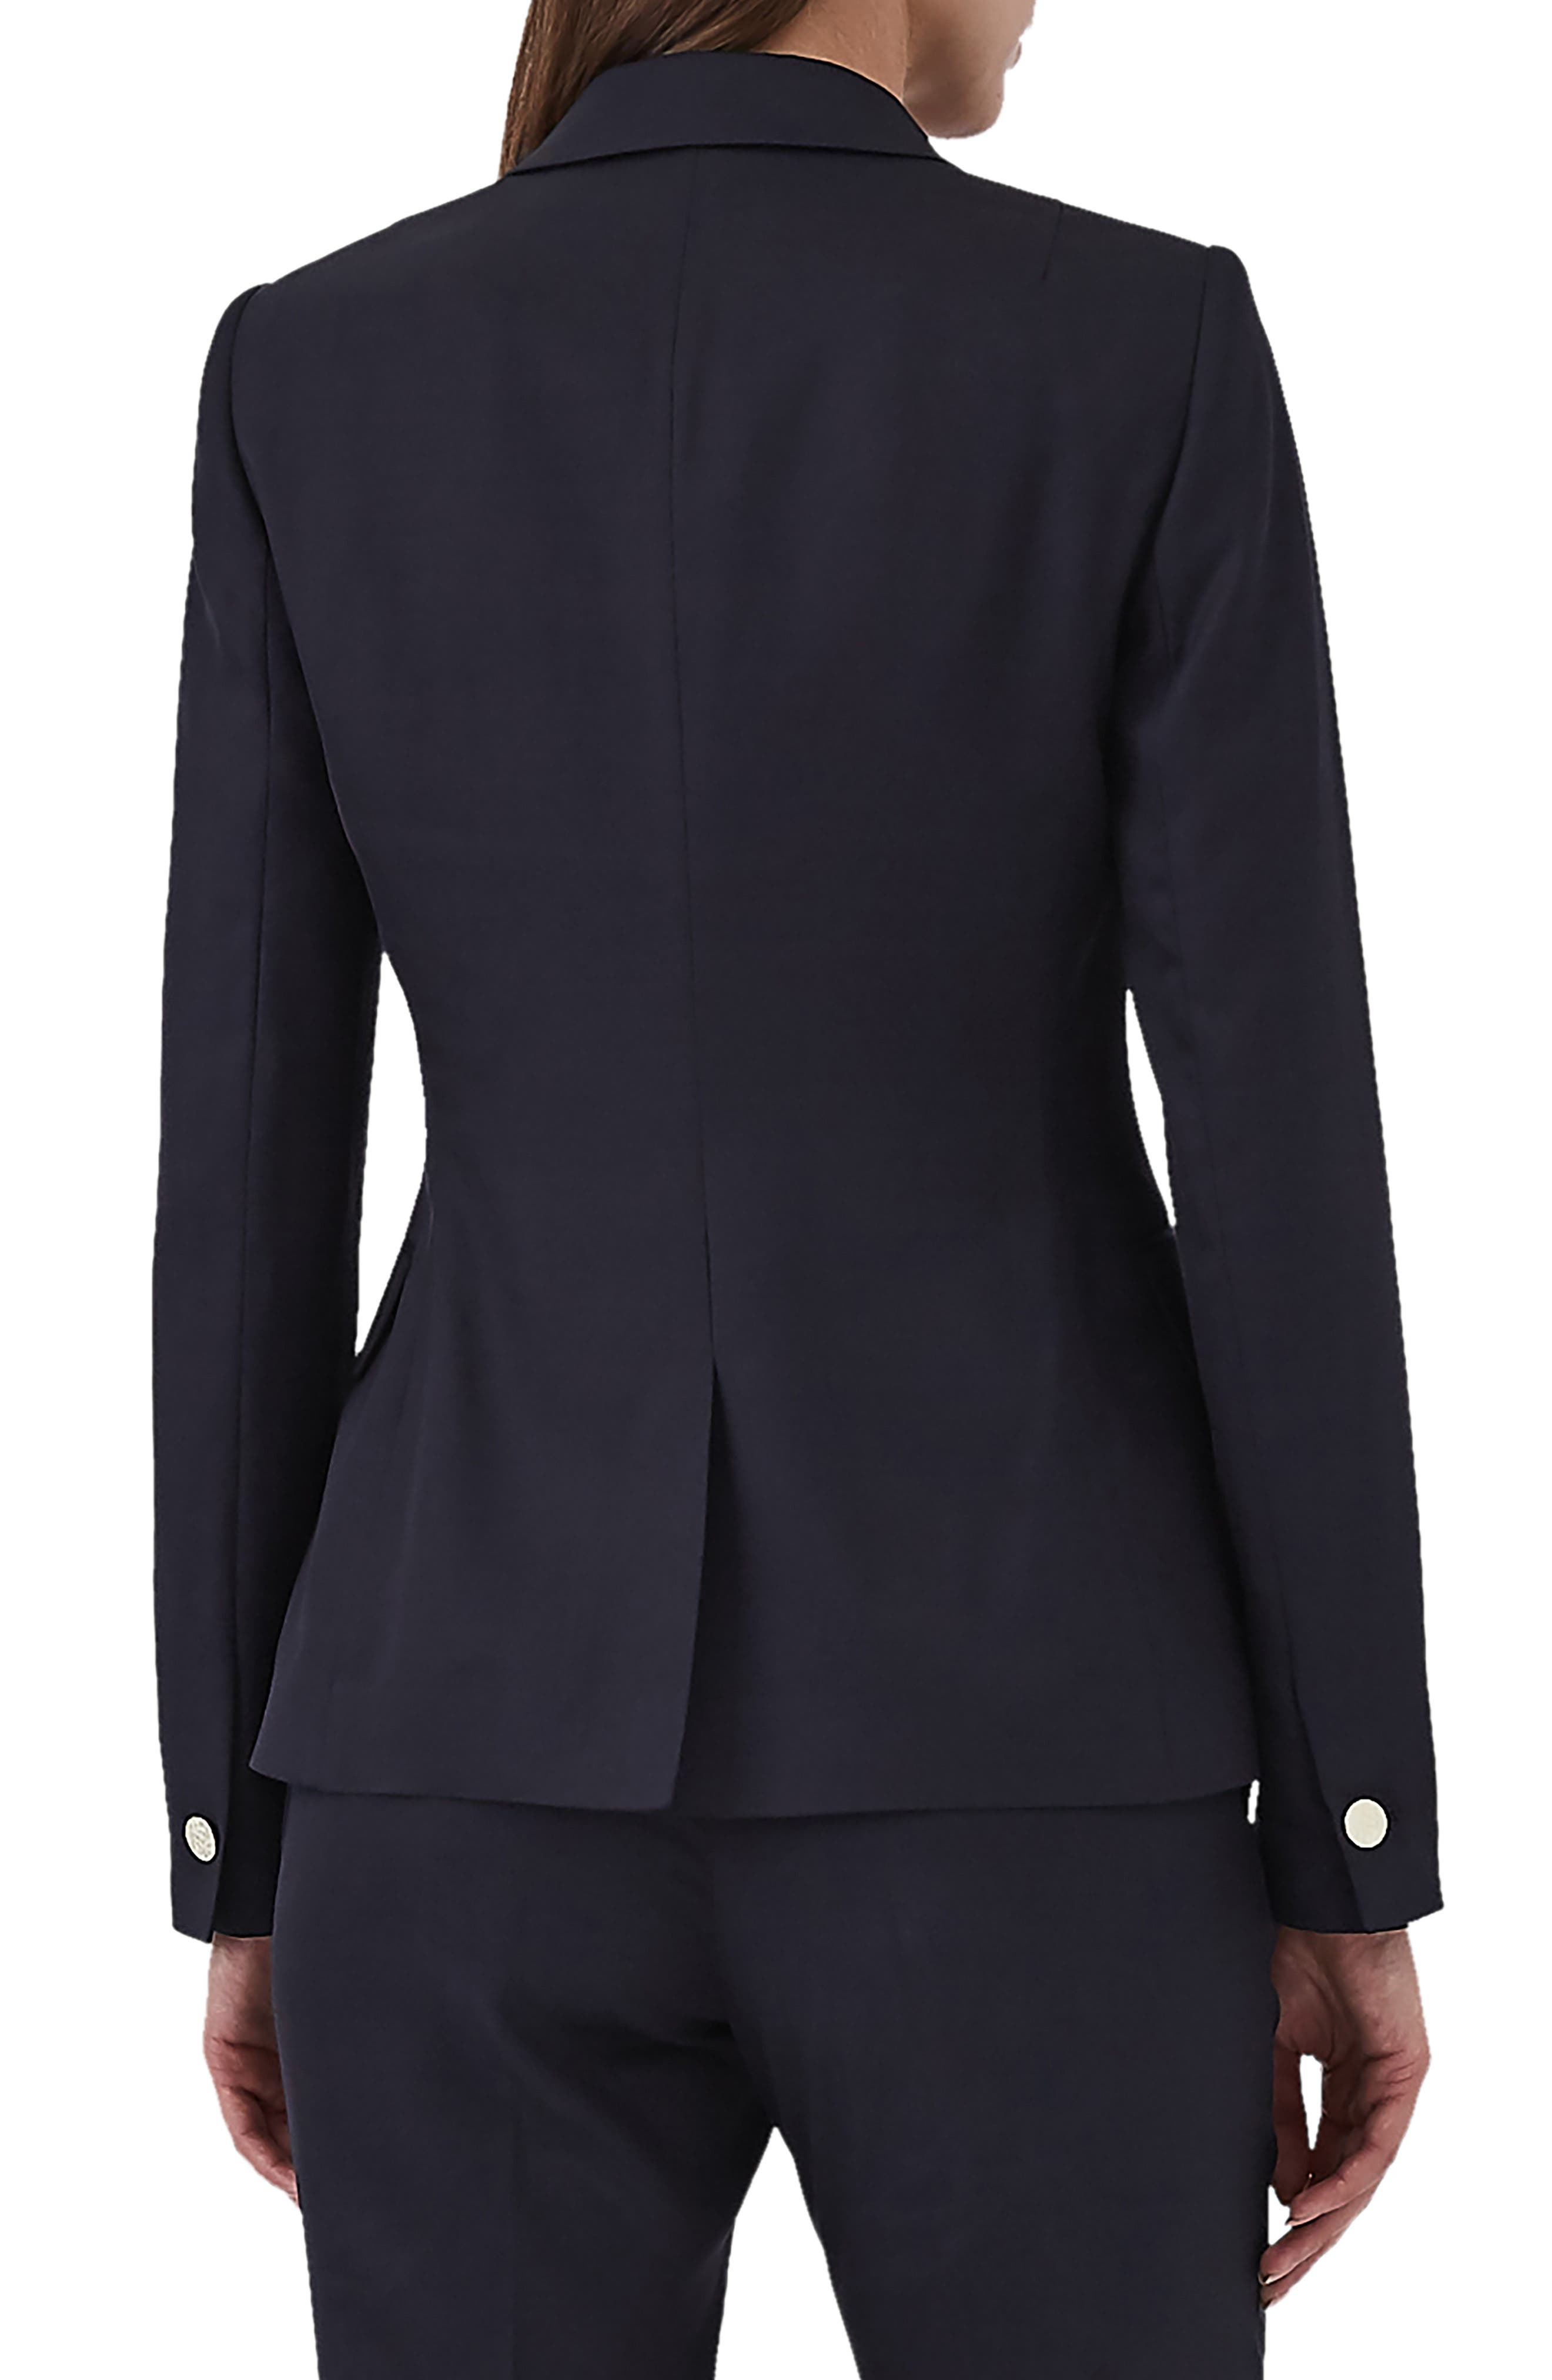 Tally Double Breasted Wool Blend Jacket,                             Alternate thumbnail 2, color,                             BLUE